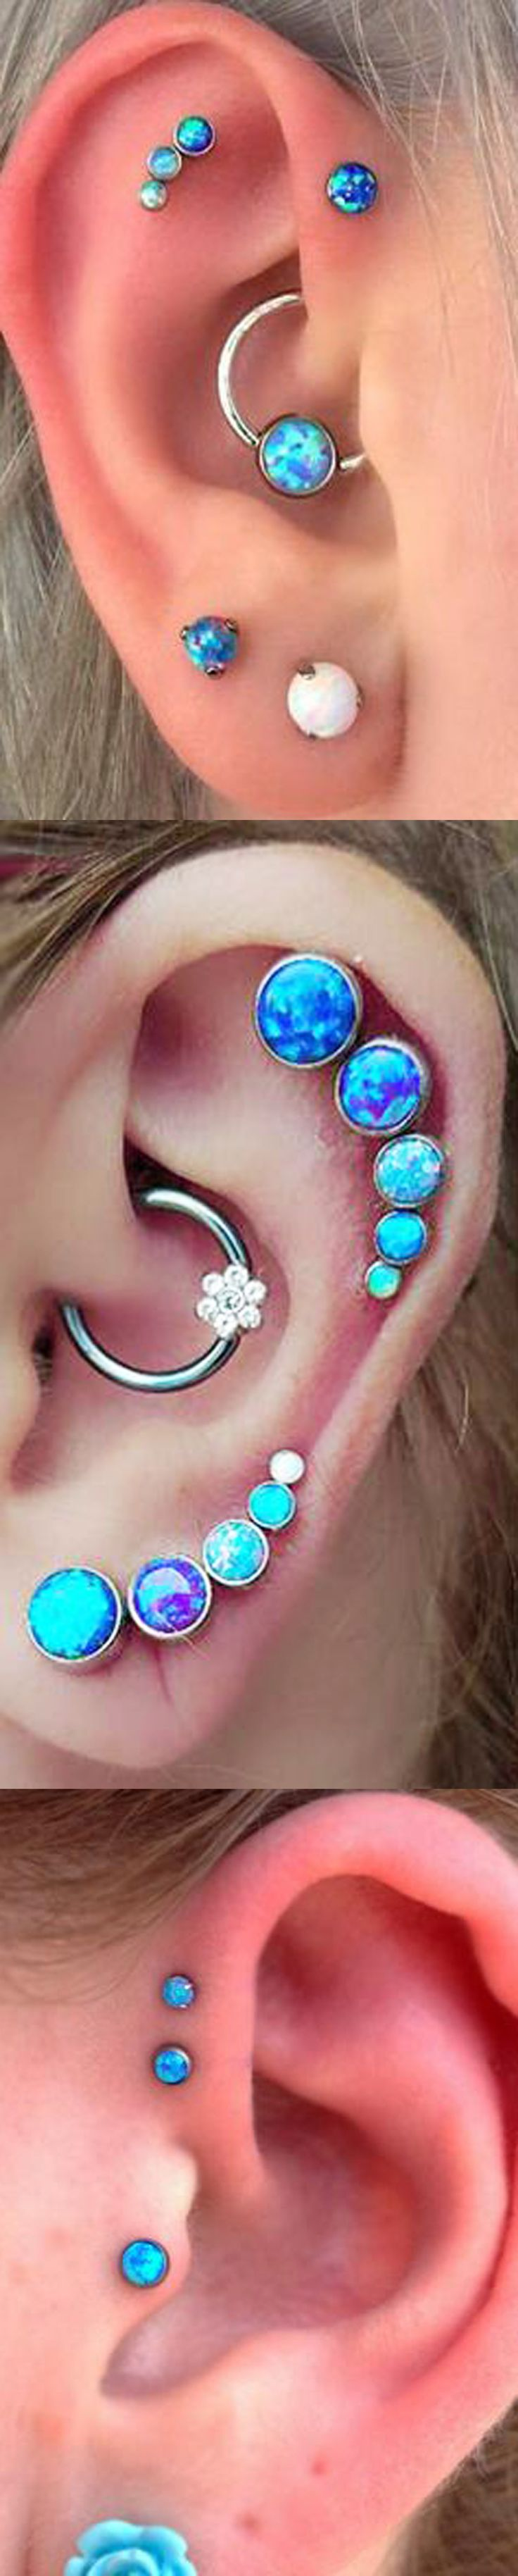 Pear piercing ideas   best Piercing images on Pinterest  Piercing ideas Nose rings